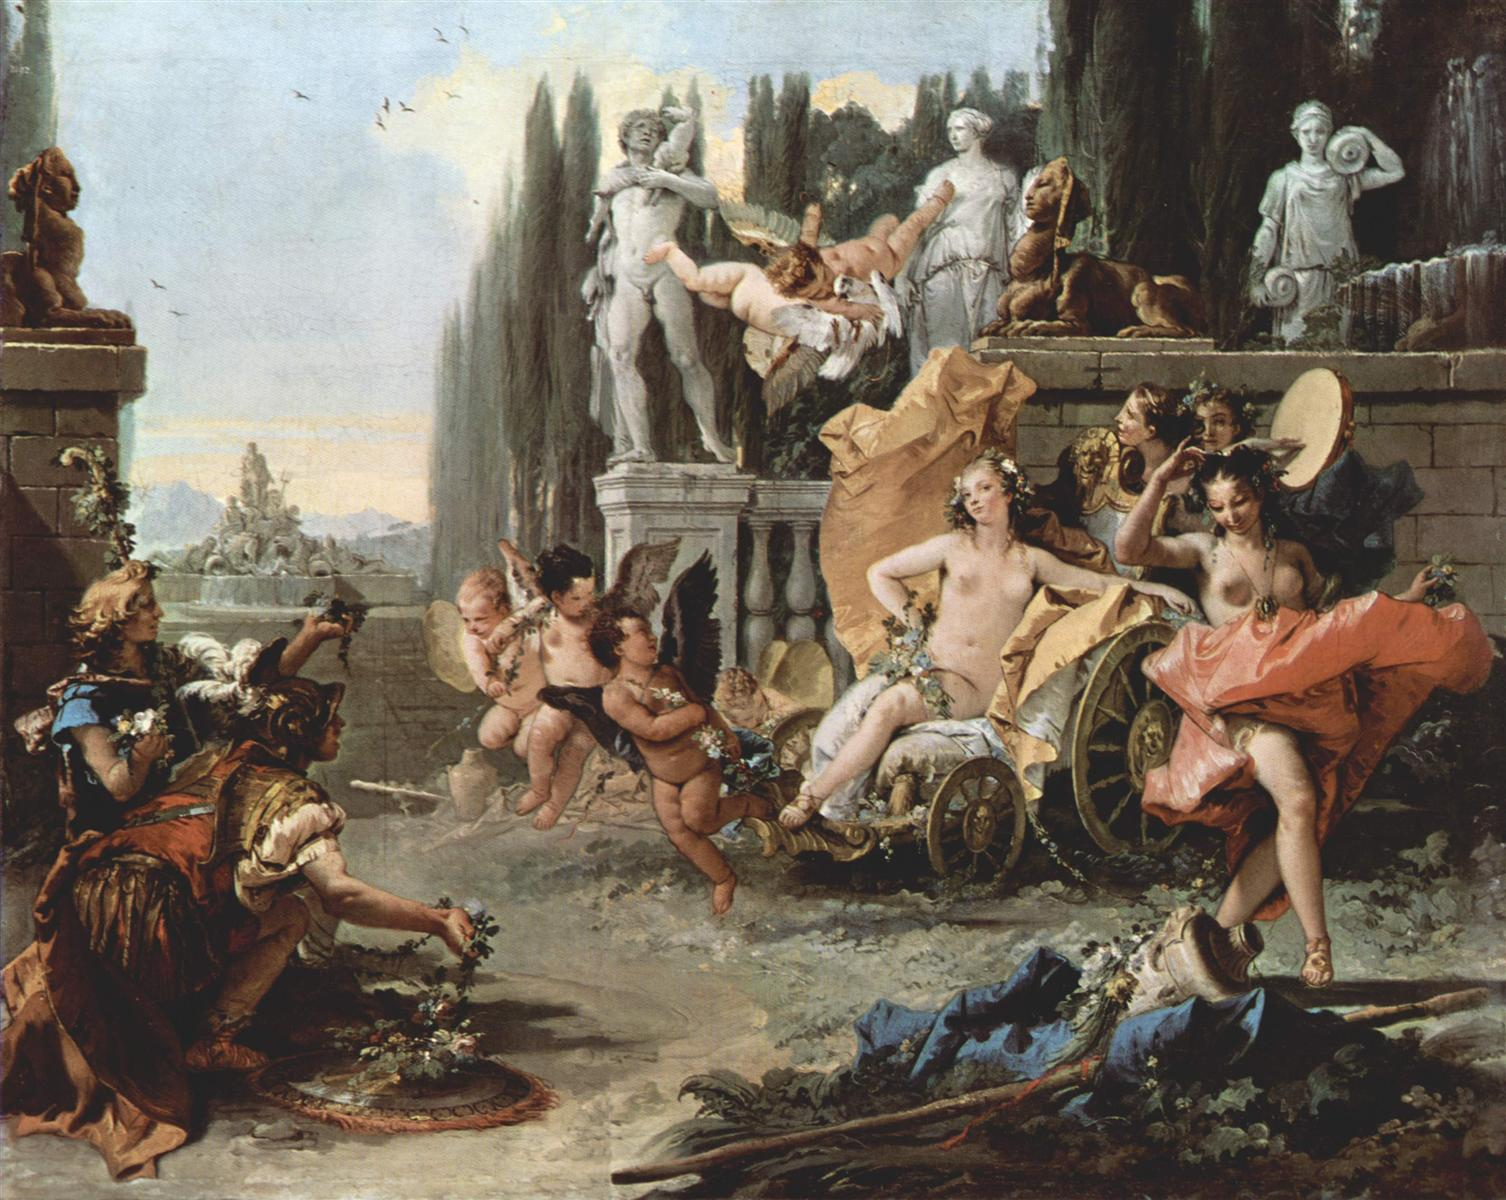 http://uploads1.wikipaintings.org/images/giovanni-battista-tiepolo/the-triumph-of-flora-1744.jpg!HD.jpg